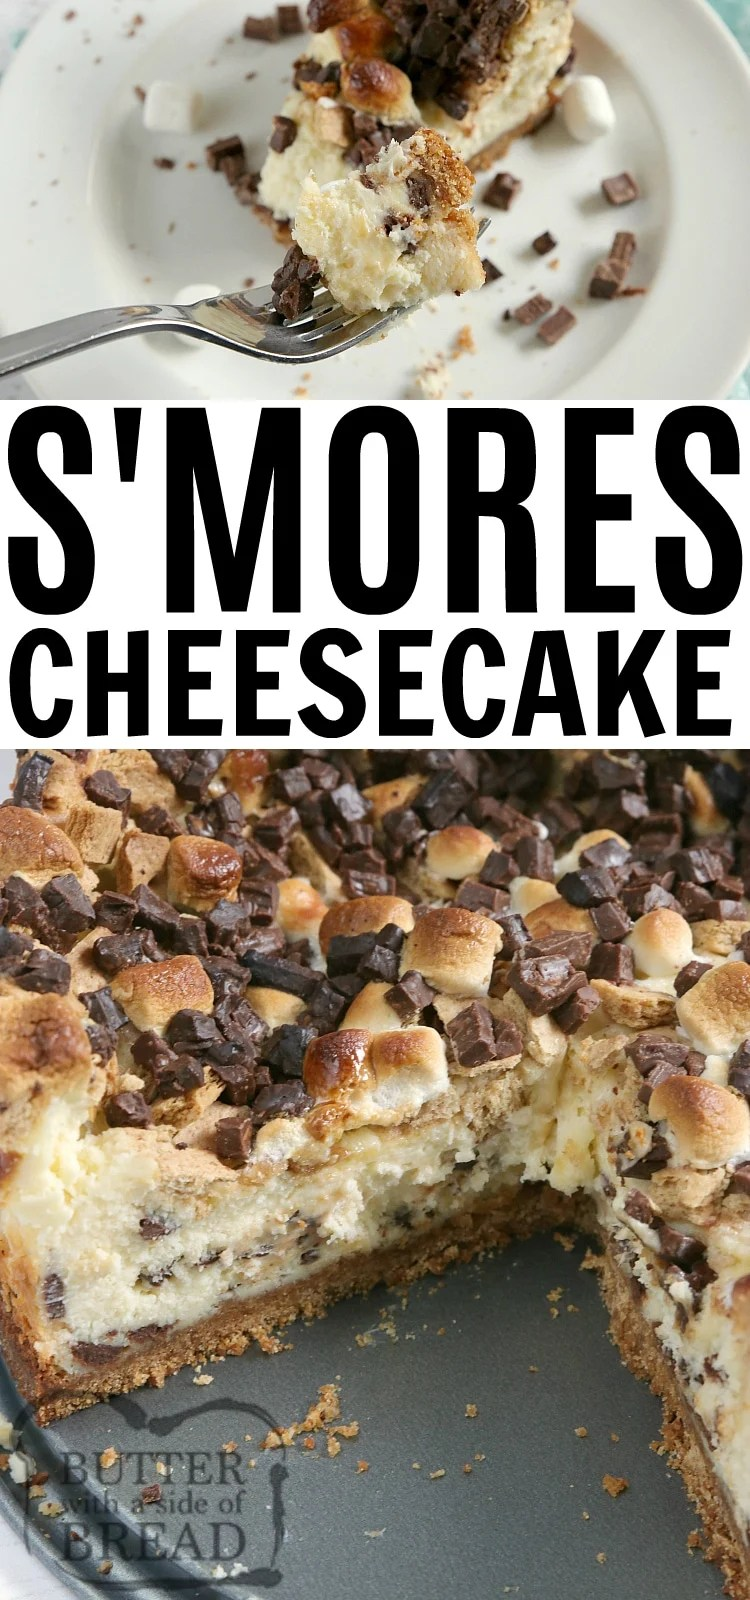 S'mores Cheesecake is a rich homemade cheesecake that is topped with chopped Hershey bars, graham cracker pieces and mini marshmallows. Making cheesecake from scratch has never been so decadent!